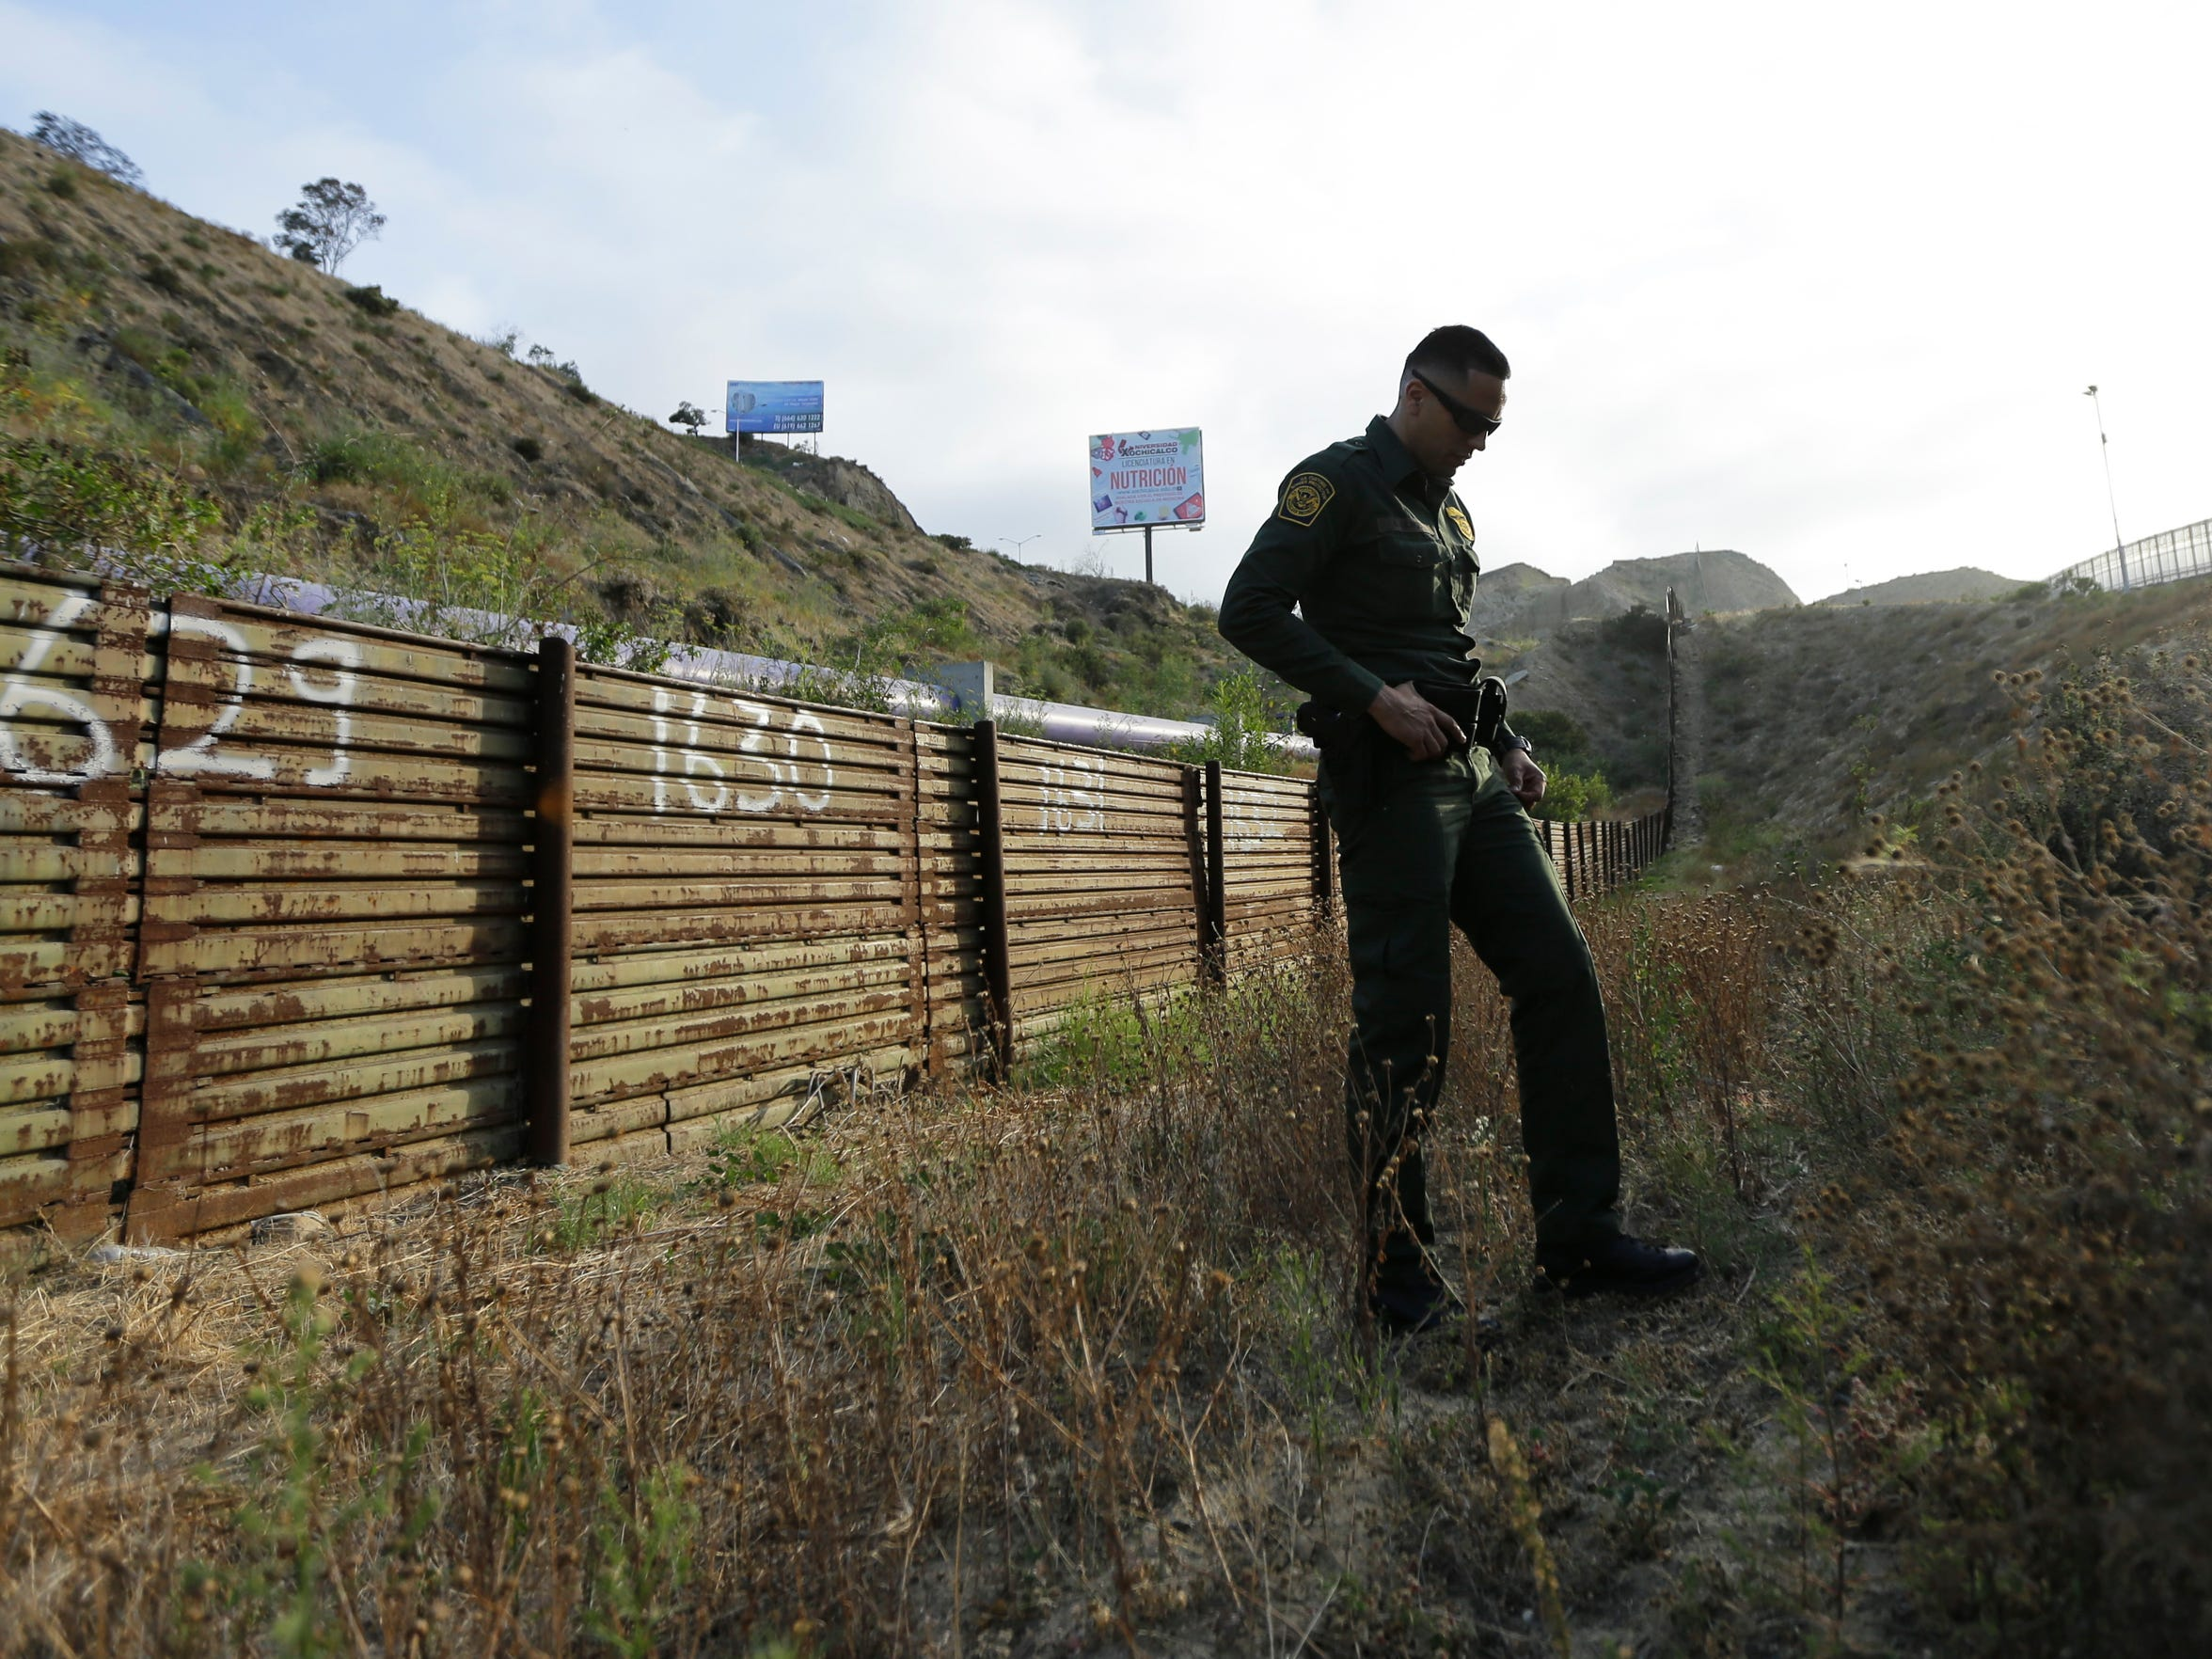 In this June 22, 2016 photo, Border Patrol agents stands near a border structure in San Diego.